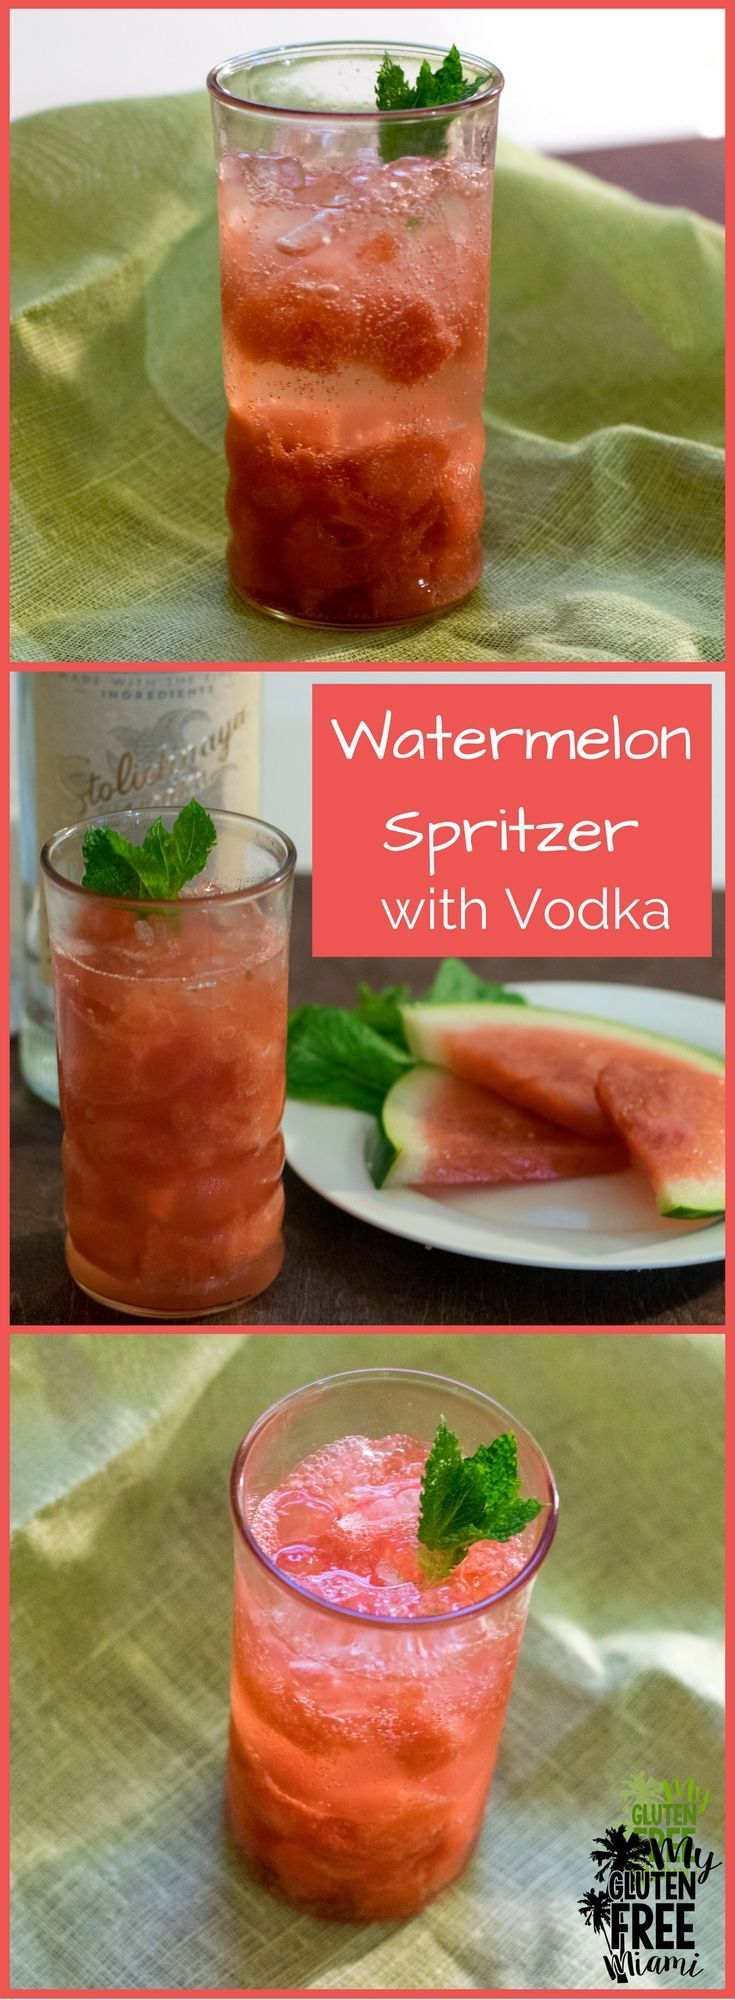 Watermelon Spritzer with Gluten Free Vodka, refreshing and crisp, perfect for a hot summer night! Kid friendly version included! via @glutenfreemiami